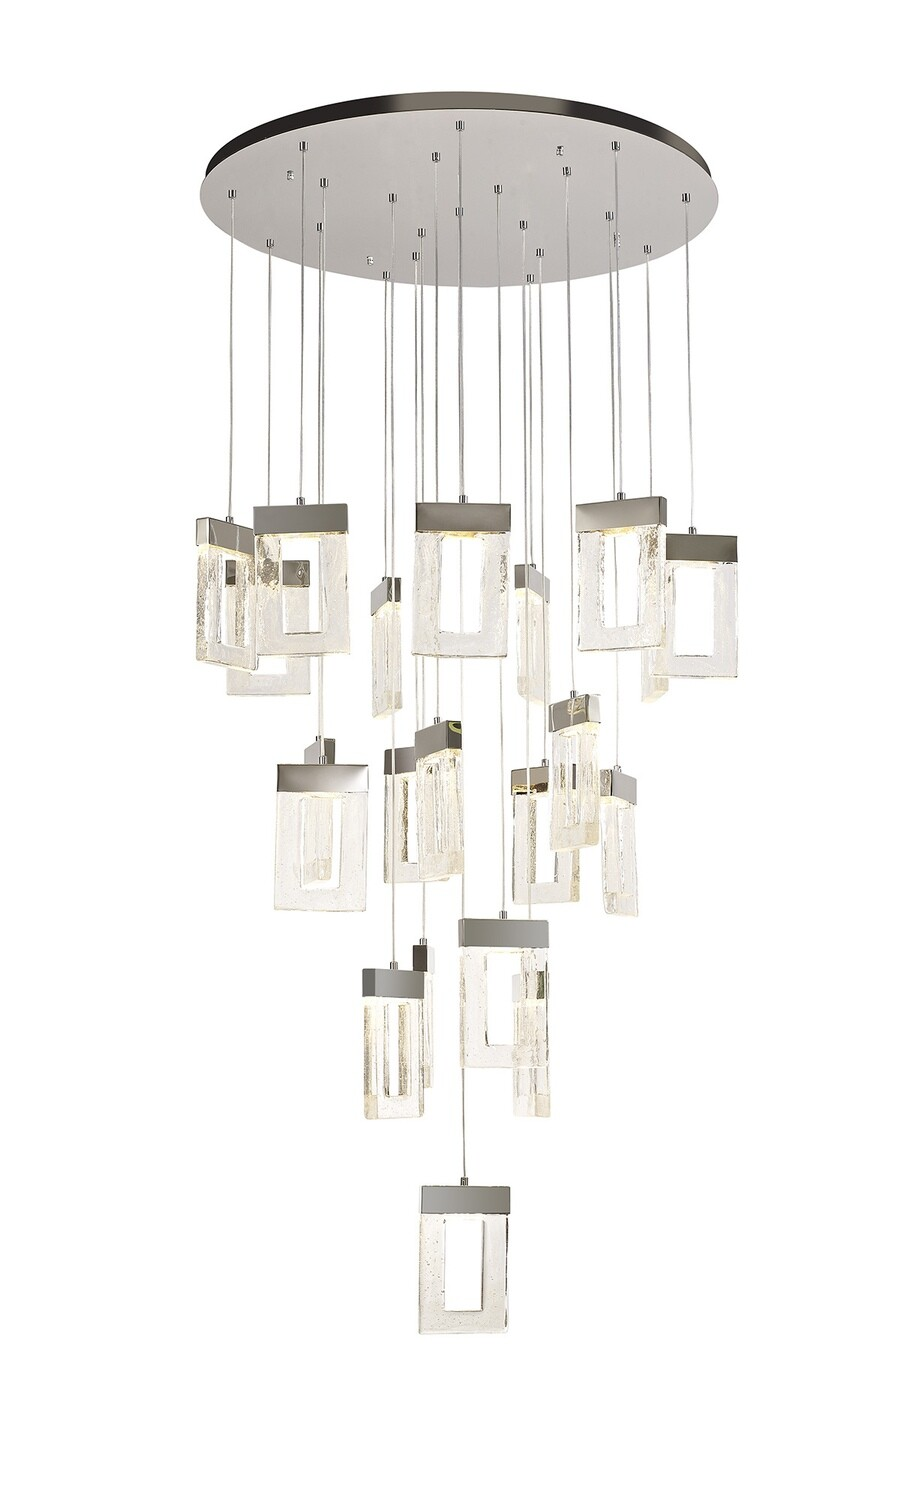 Etoile Pendant 5M, 21 x 4.5W LED, 3000K, 3360lm, Polished Chrome